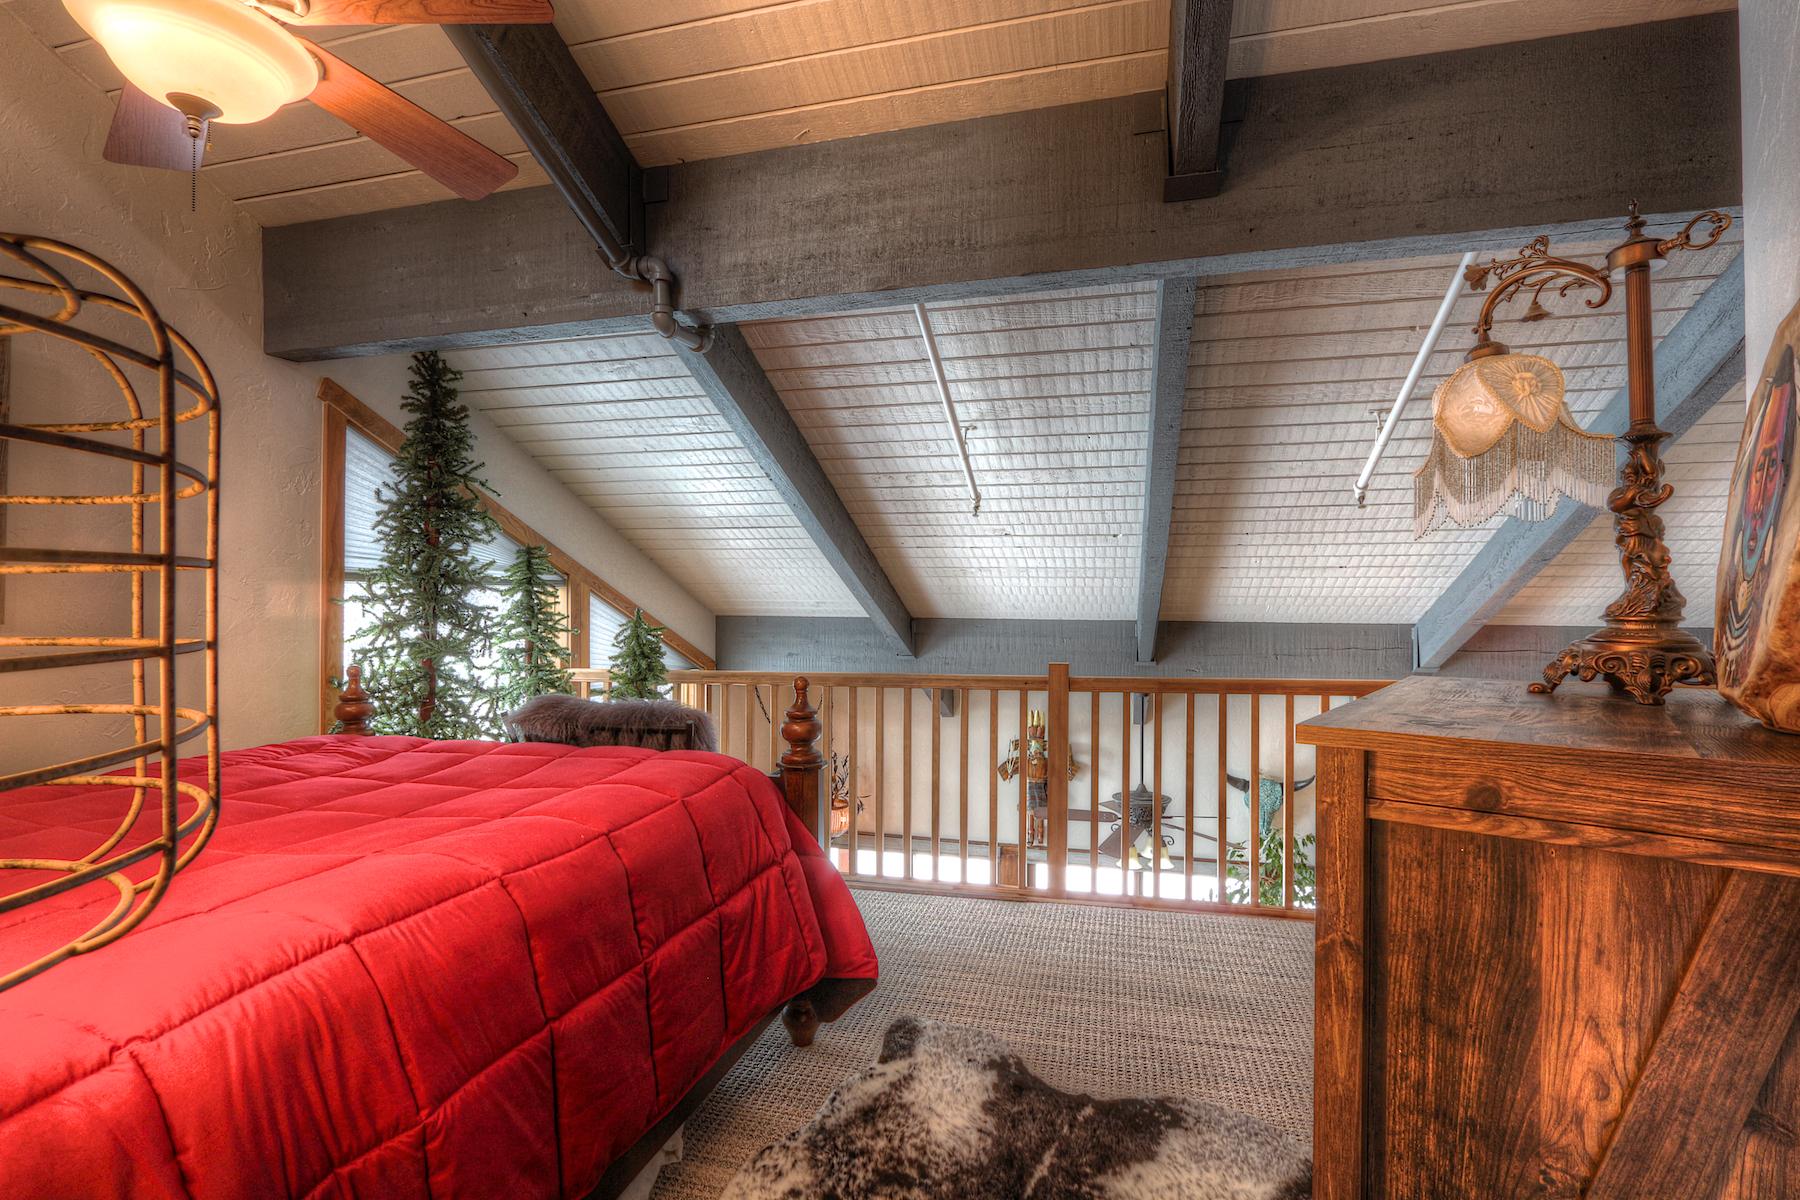 Additional photo for property listing at Highpoint Unit 590-592 961 N Tamarron Drive Unit 590-592 Durango, Colorado 81301 United States